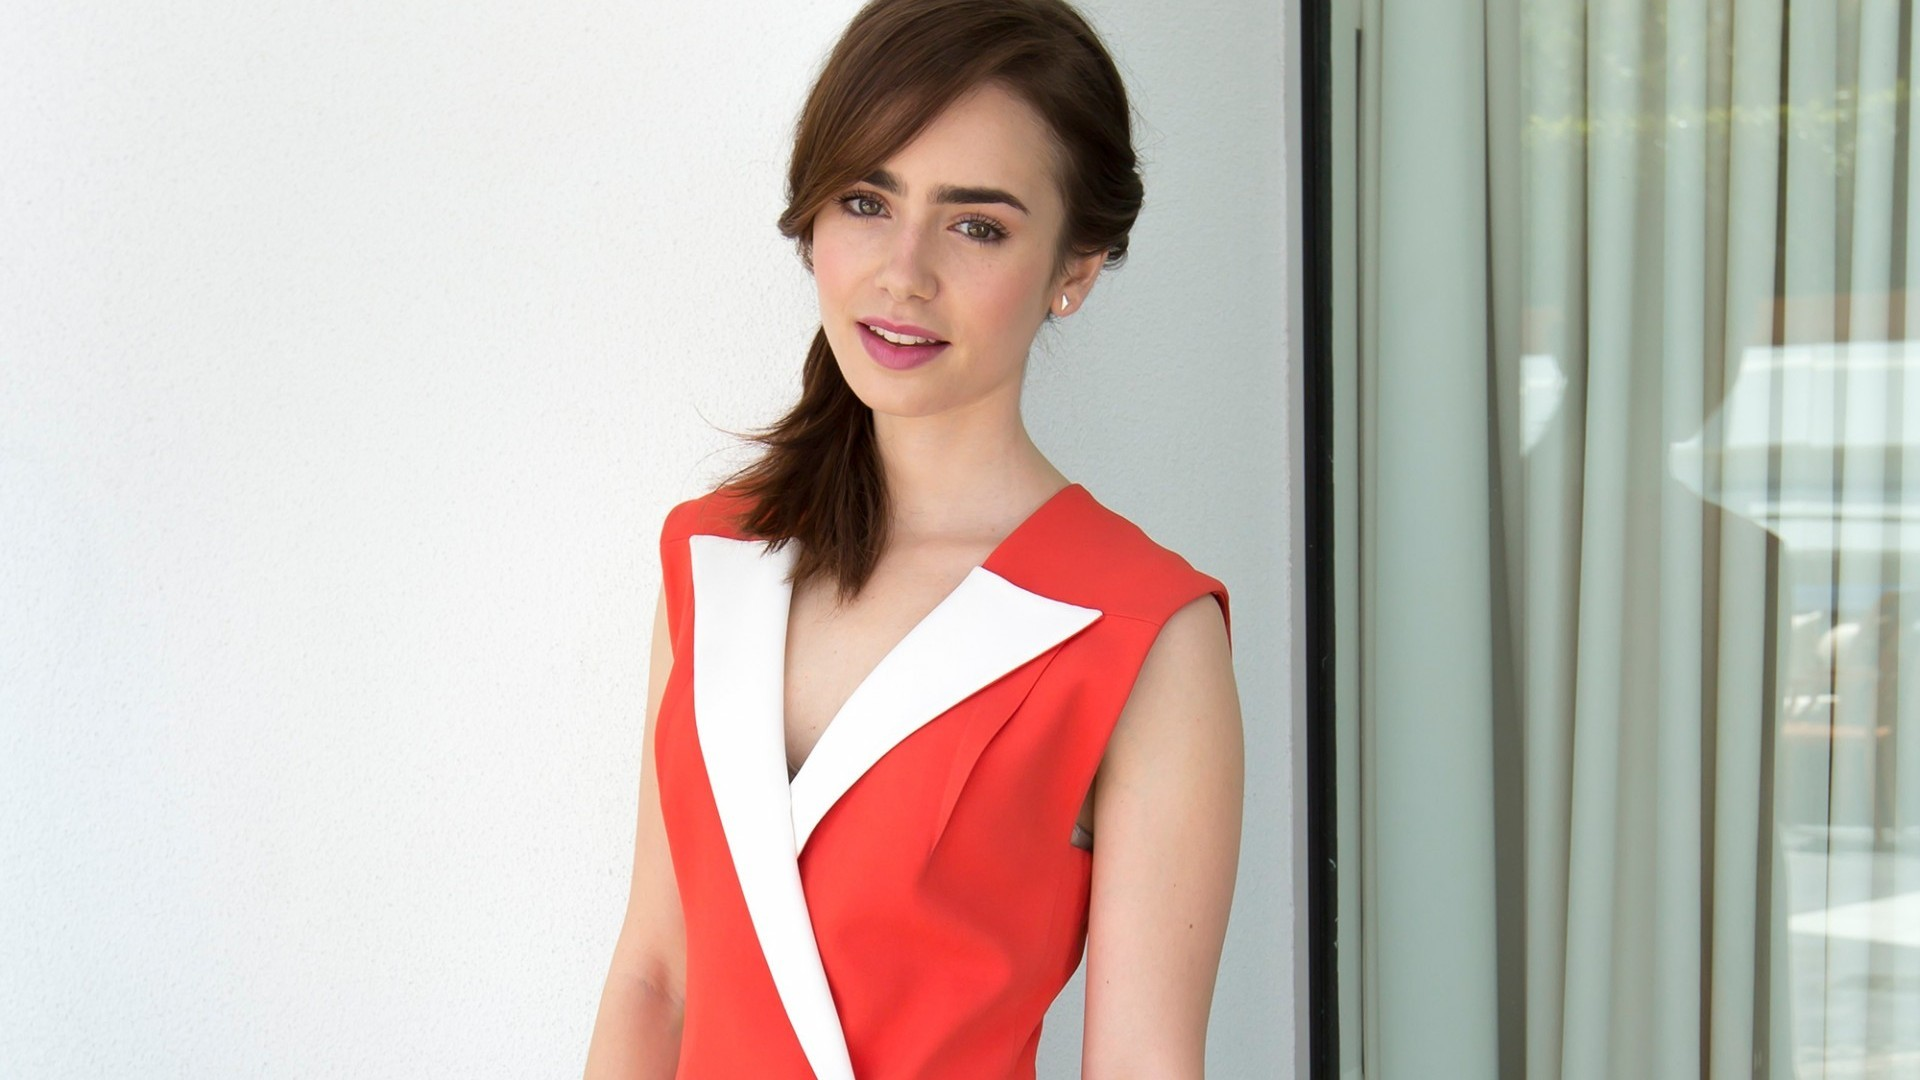 hqfx - lily collins - fine lily collins wallpapers